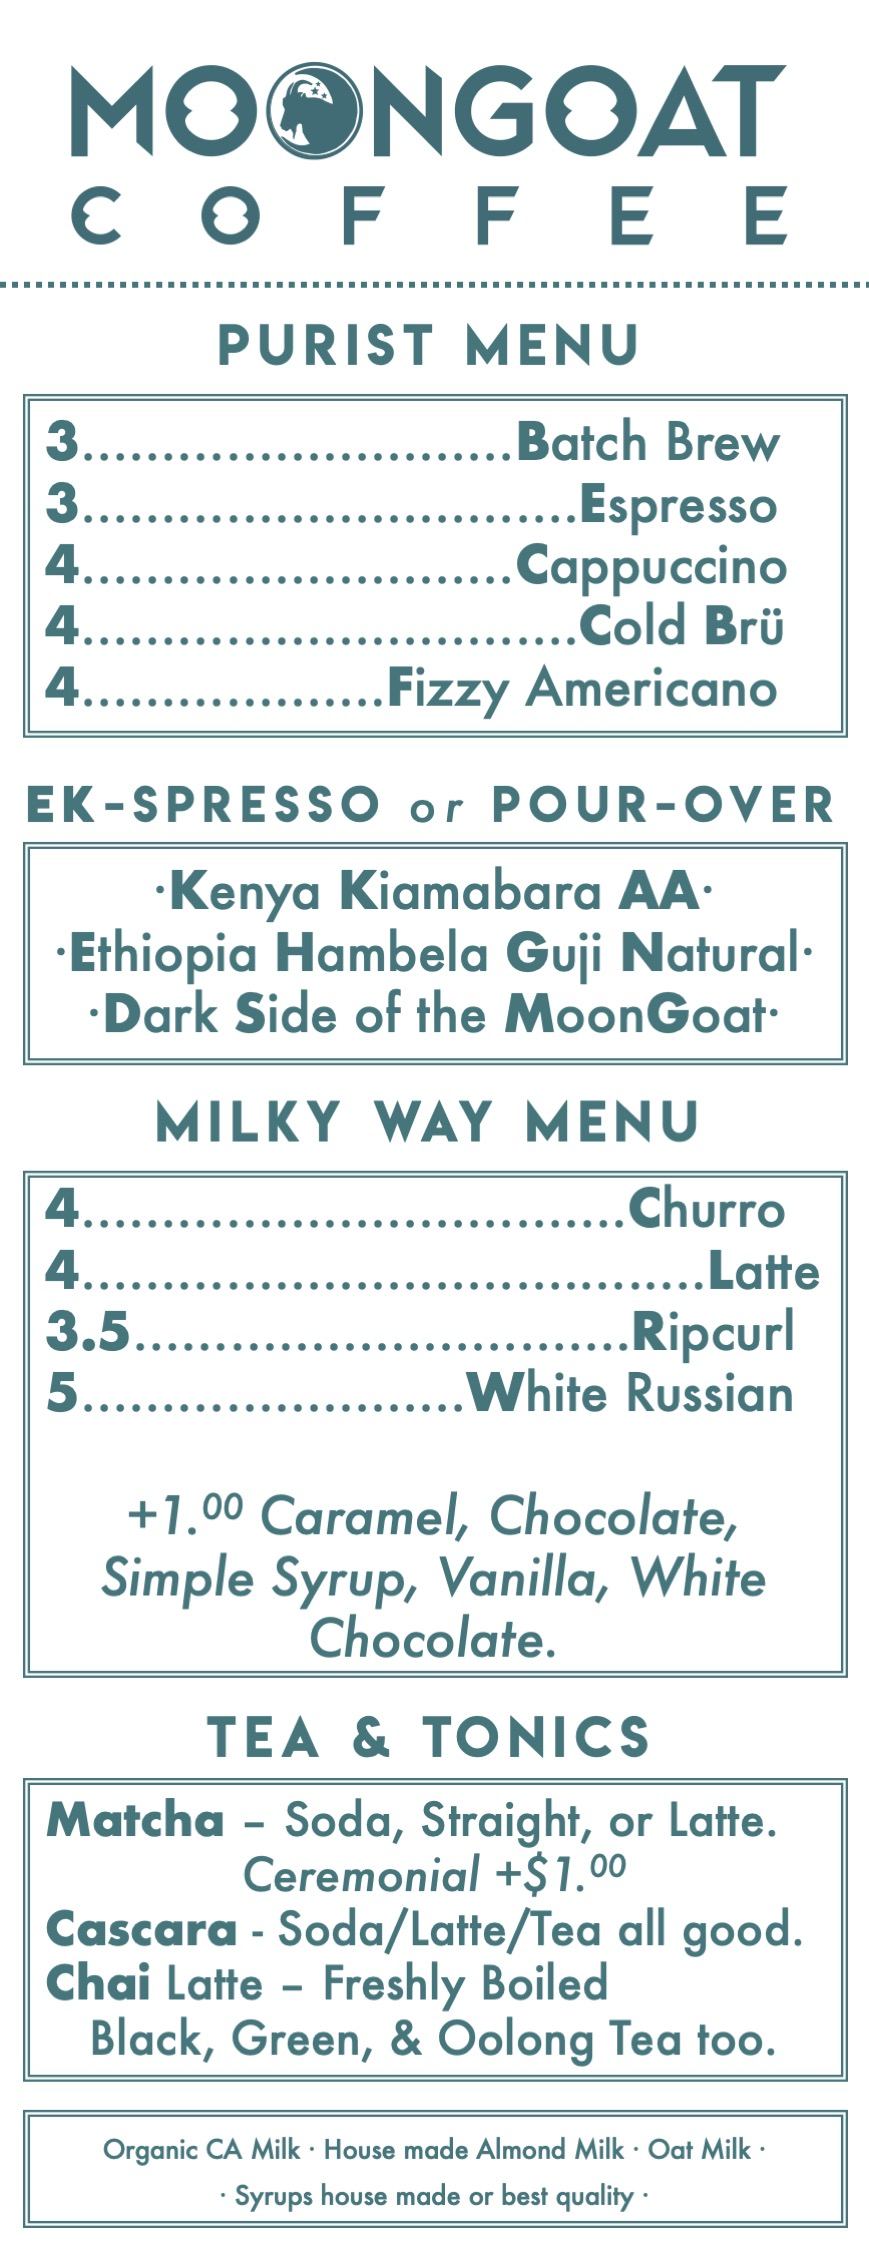 Menu - We approach our menu with a few simple principles in mind. Quality and approachability. We will keep it fresh and seasonal, but for now this is what we serve in the roastery.